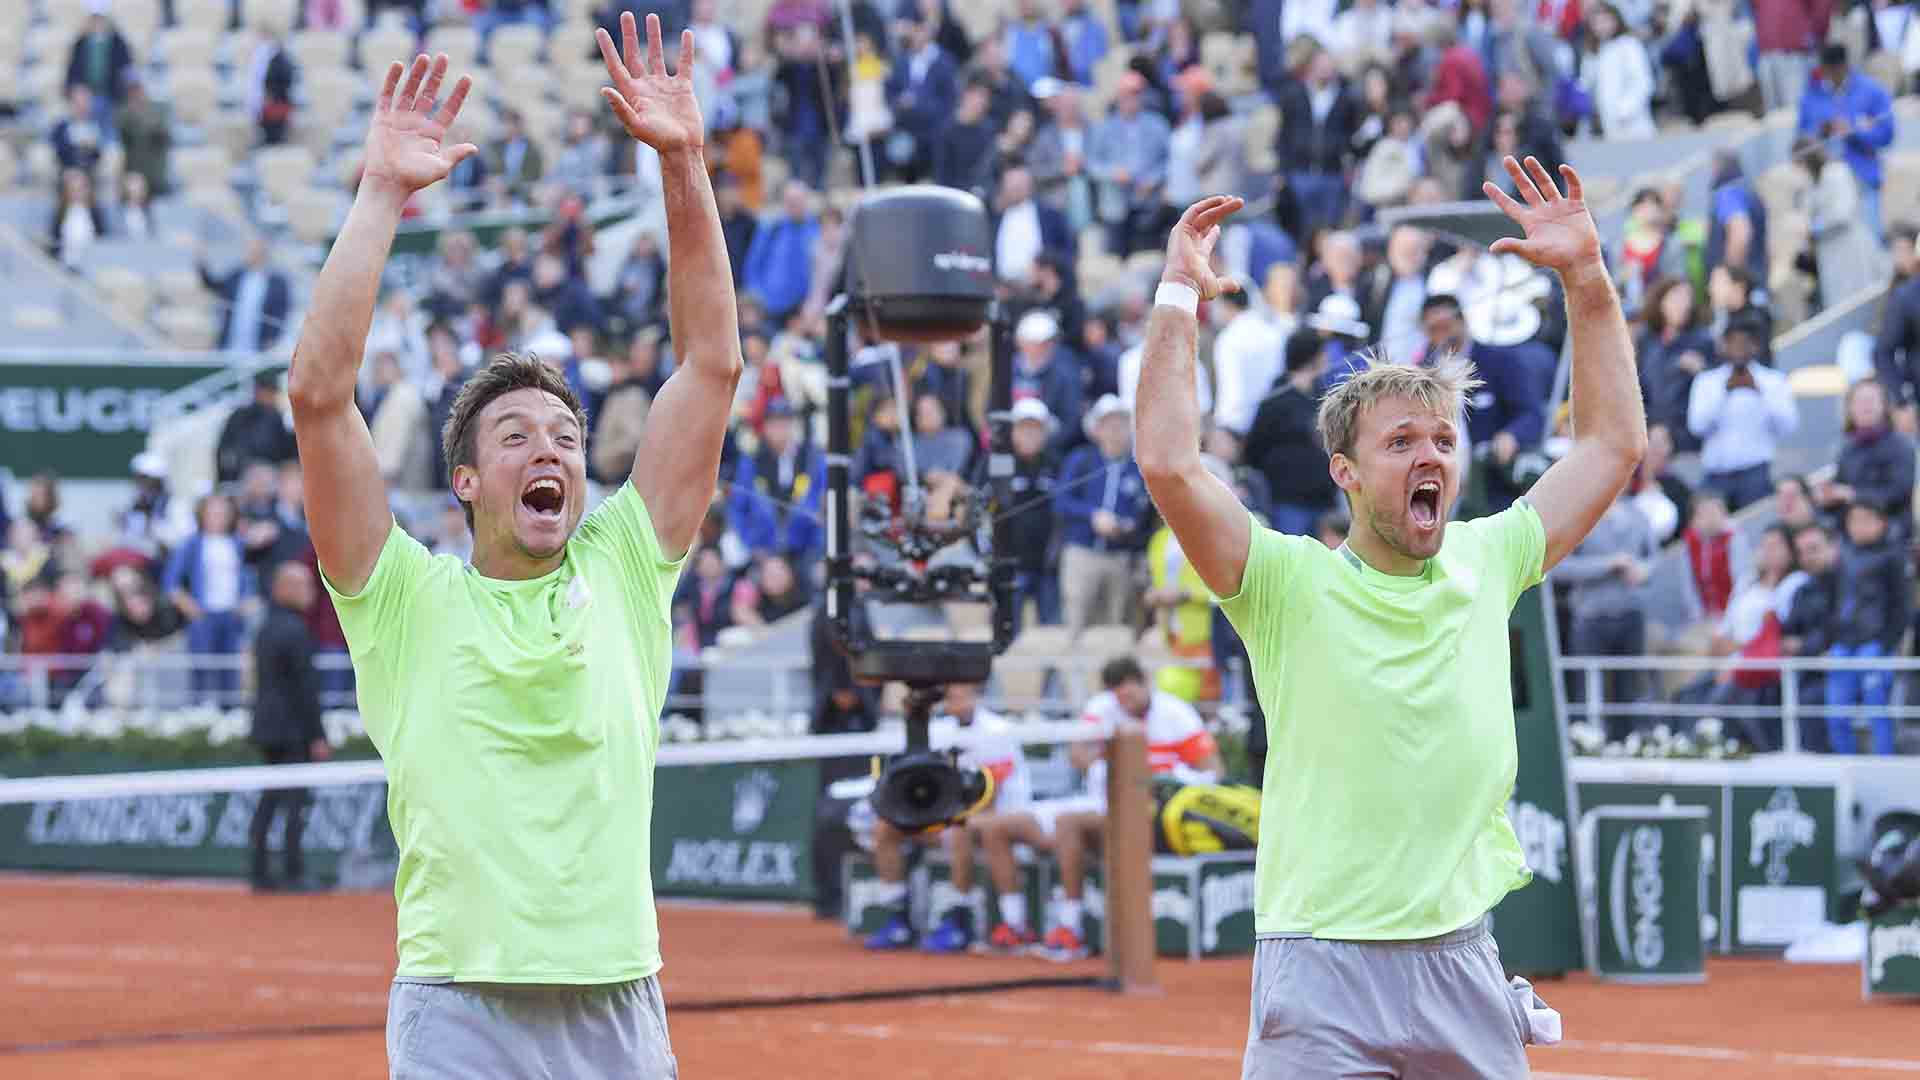 Andreas Mies and Kevin Krawietz win their first Grand Slam title at Roland Garros.